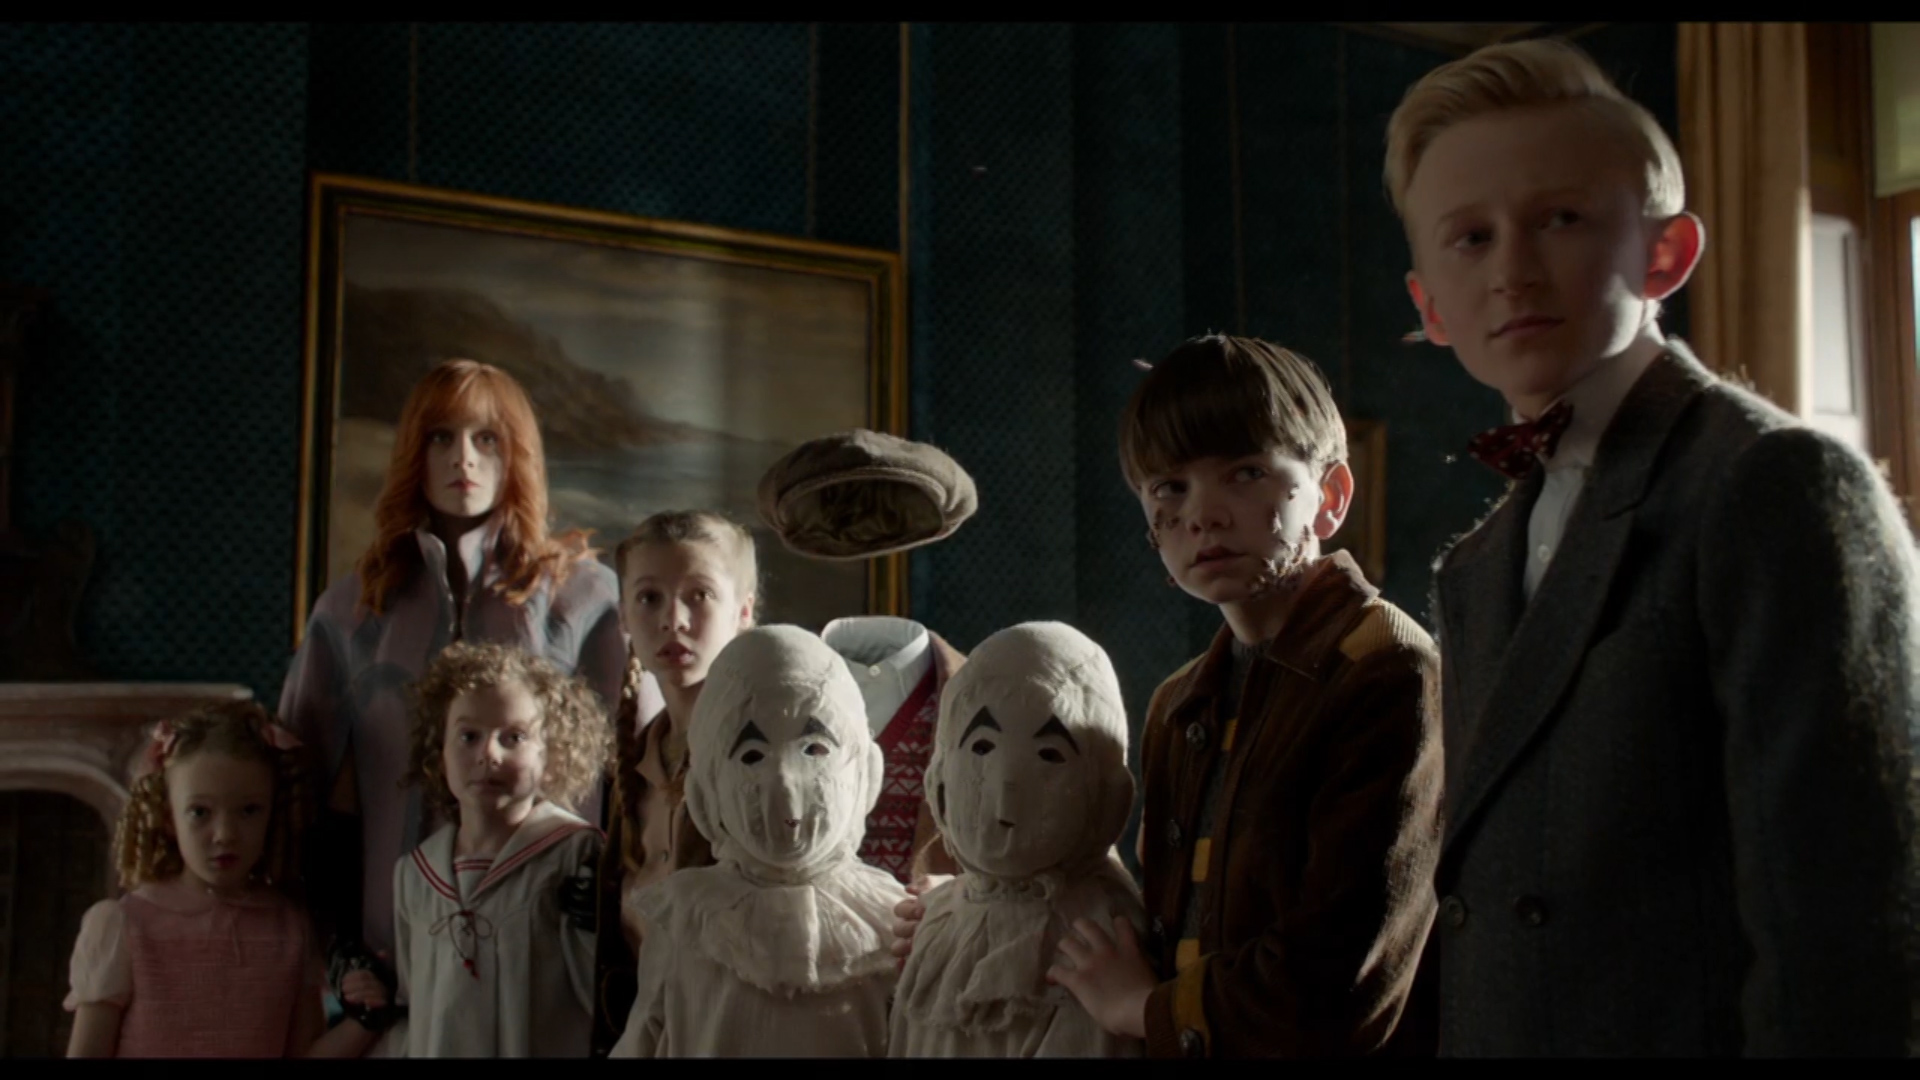 A boy becomes the protector of a group of extraordinary peers in Tim Burton's adaptation of the best-selling book 'Miss Peregrine's Home for Peculiar Children.'